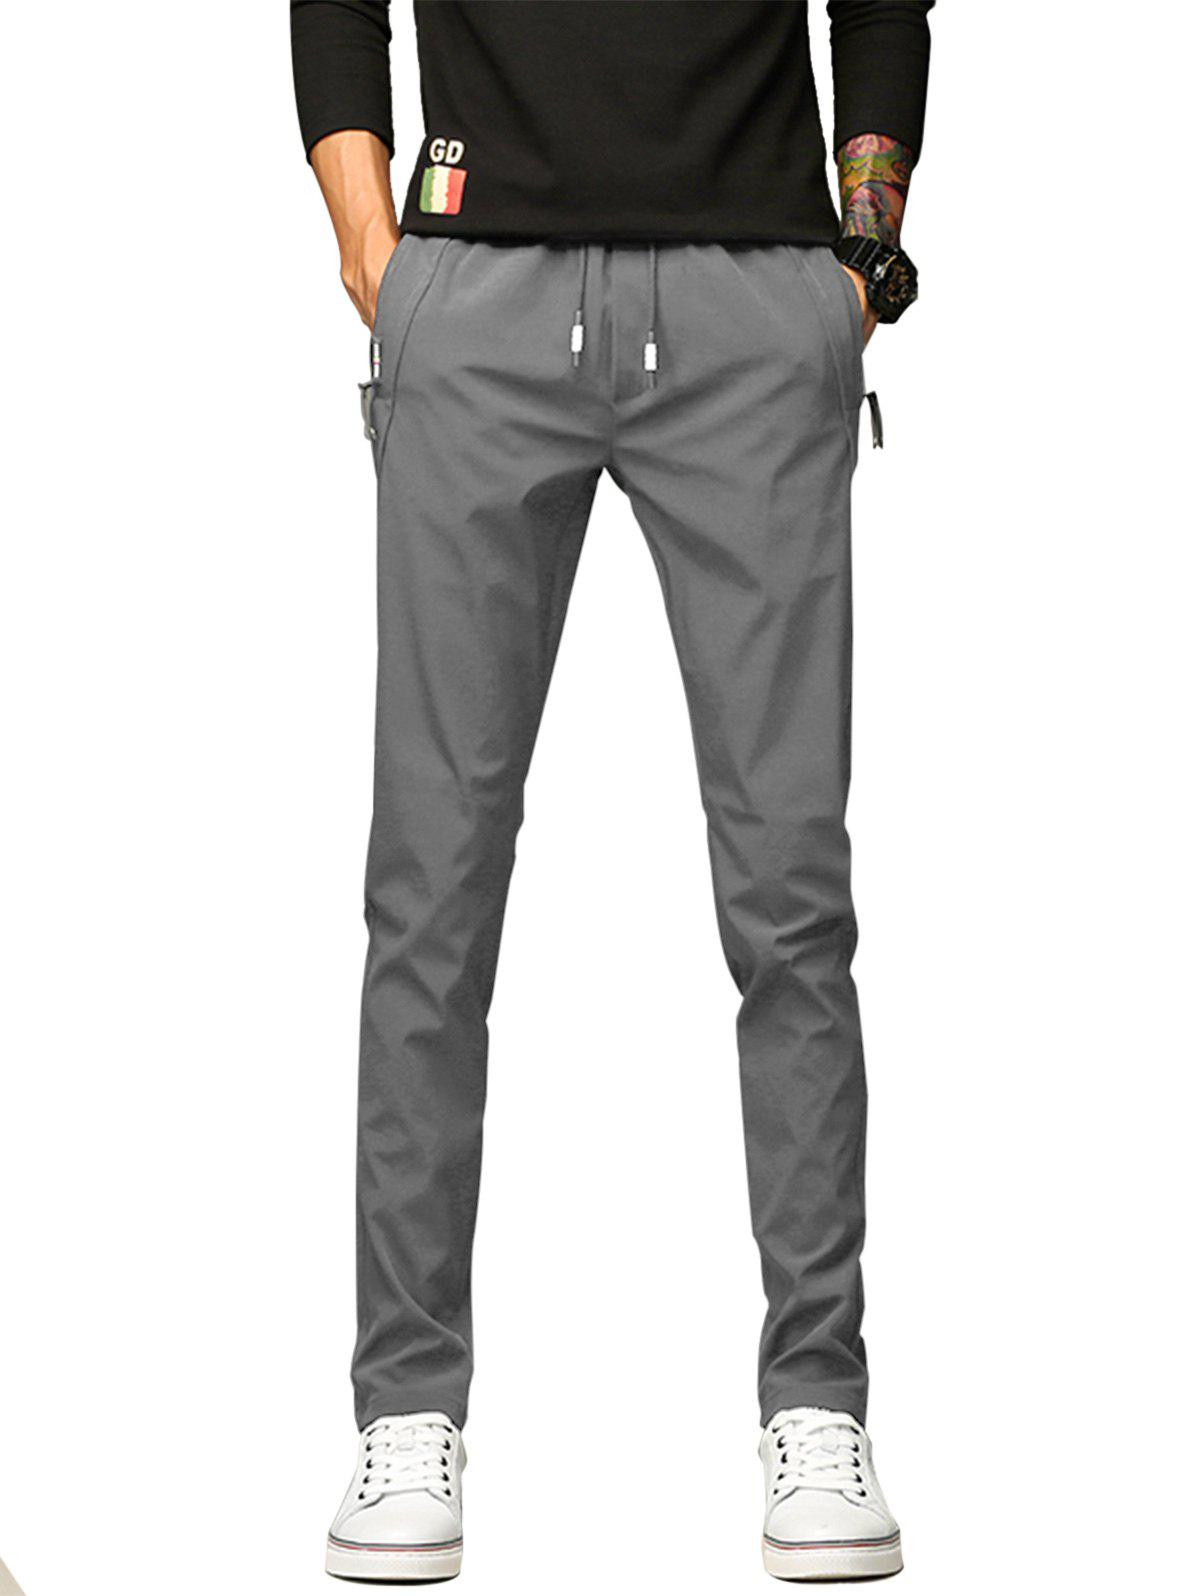 Zip Up Pockets Drawstring Pants